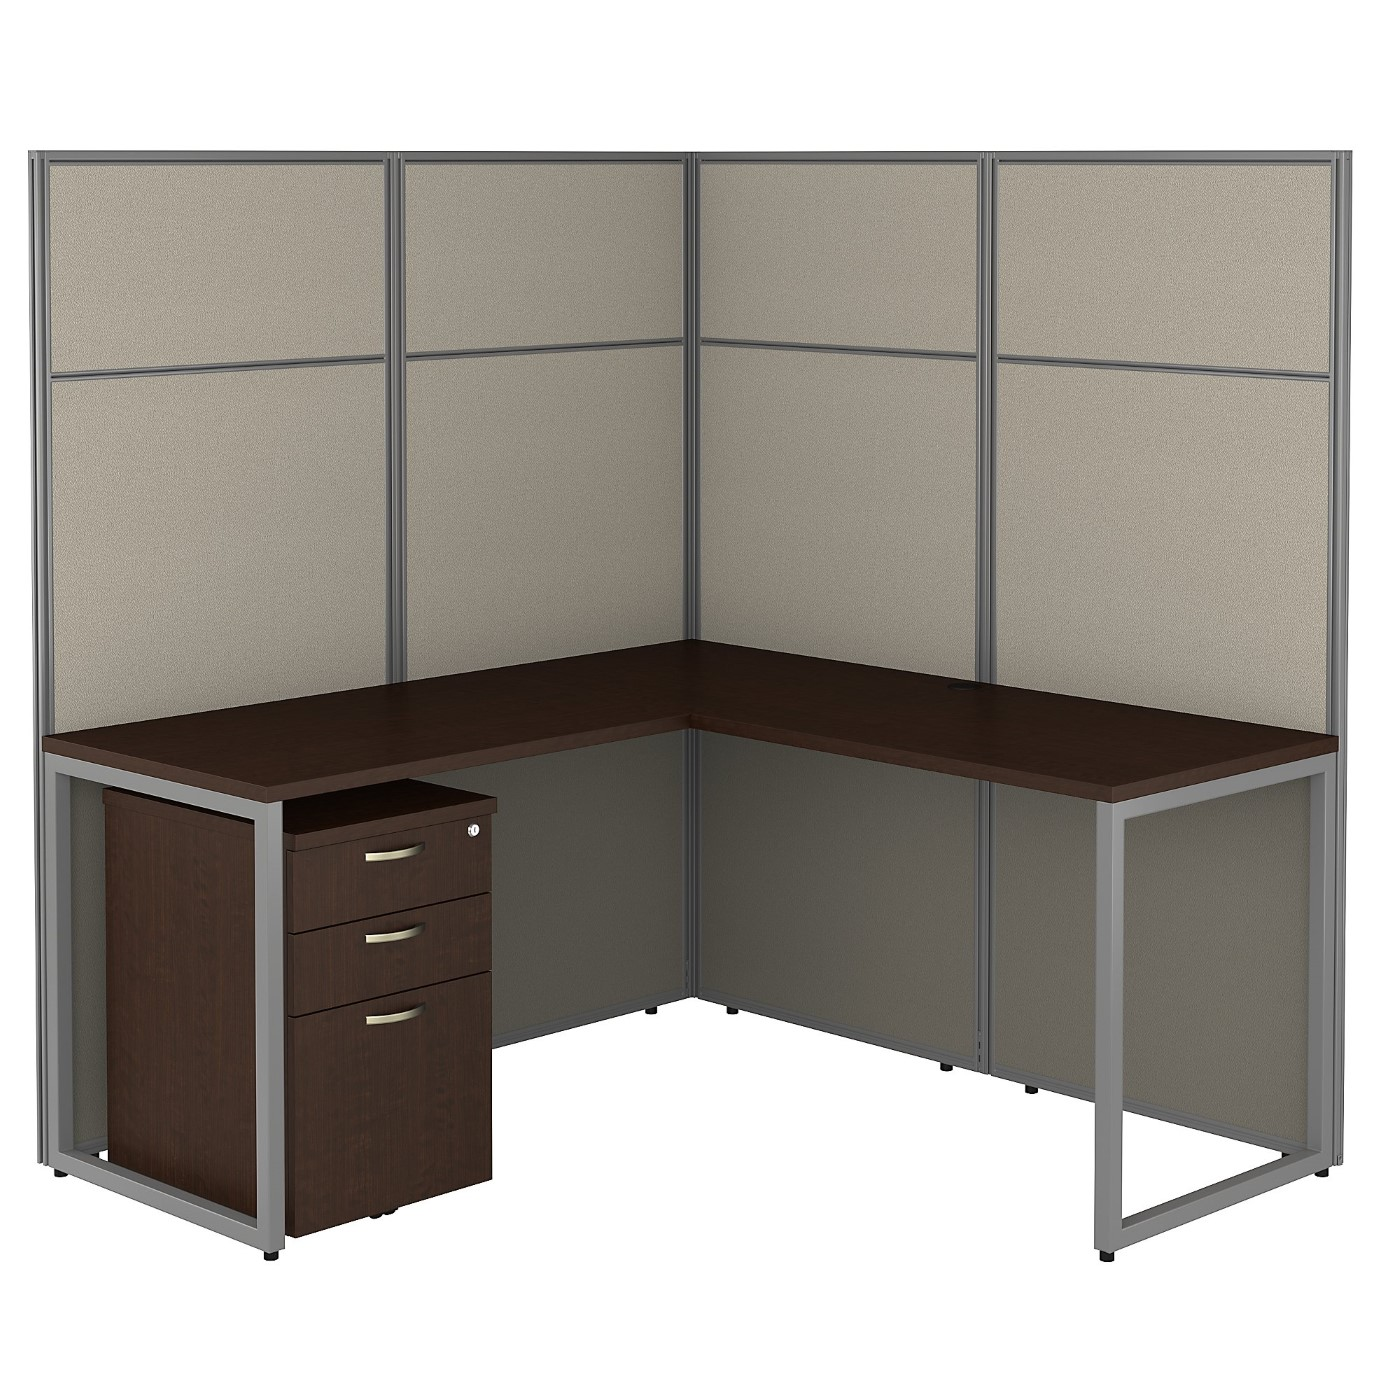 BUSH BUSINESS FURNITURE EASY OFFICE 60W L SHAPED CUBICLE DESK WITH FILE CABINET AND 66H PANELS. FREE SHIPPING 30H x 72L x 72W.